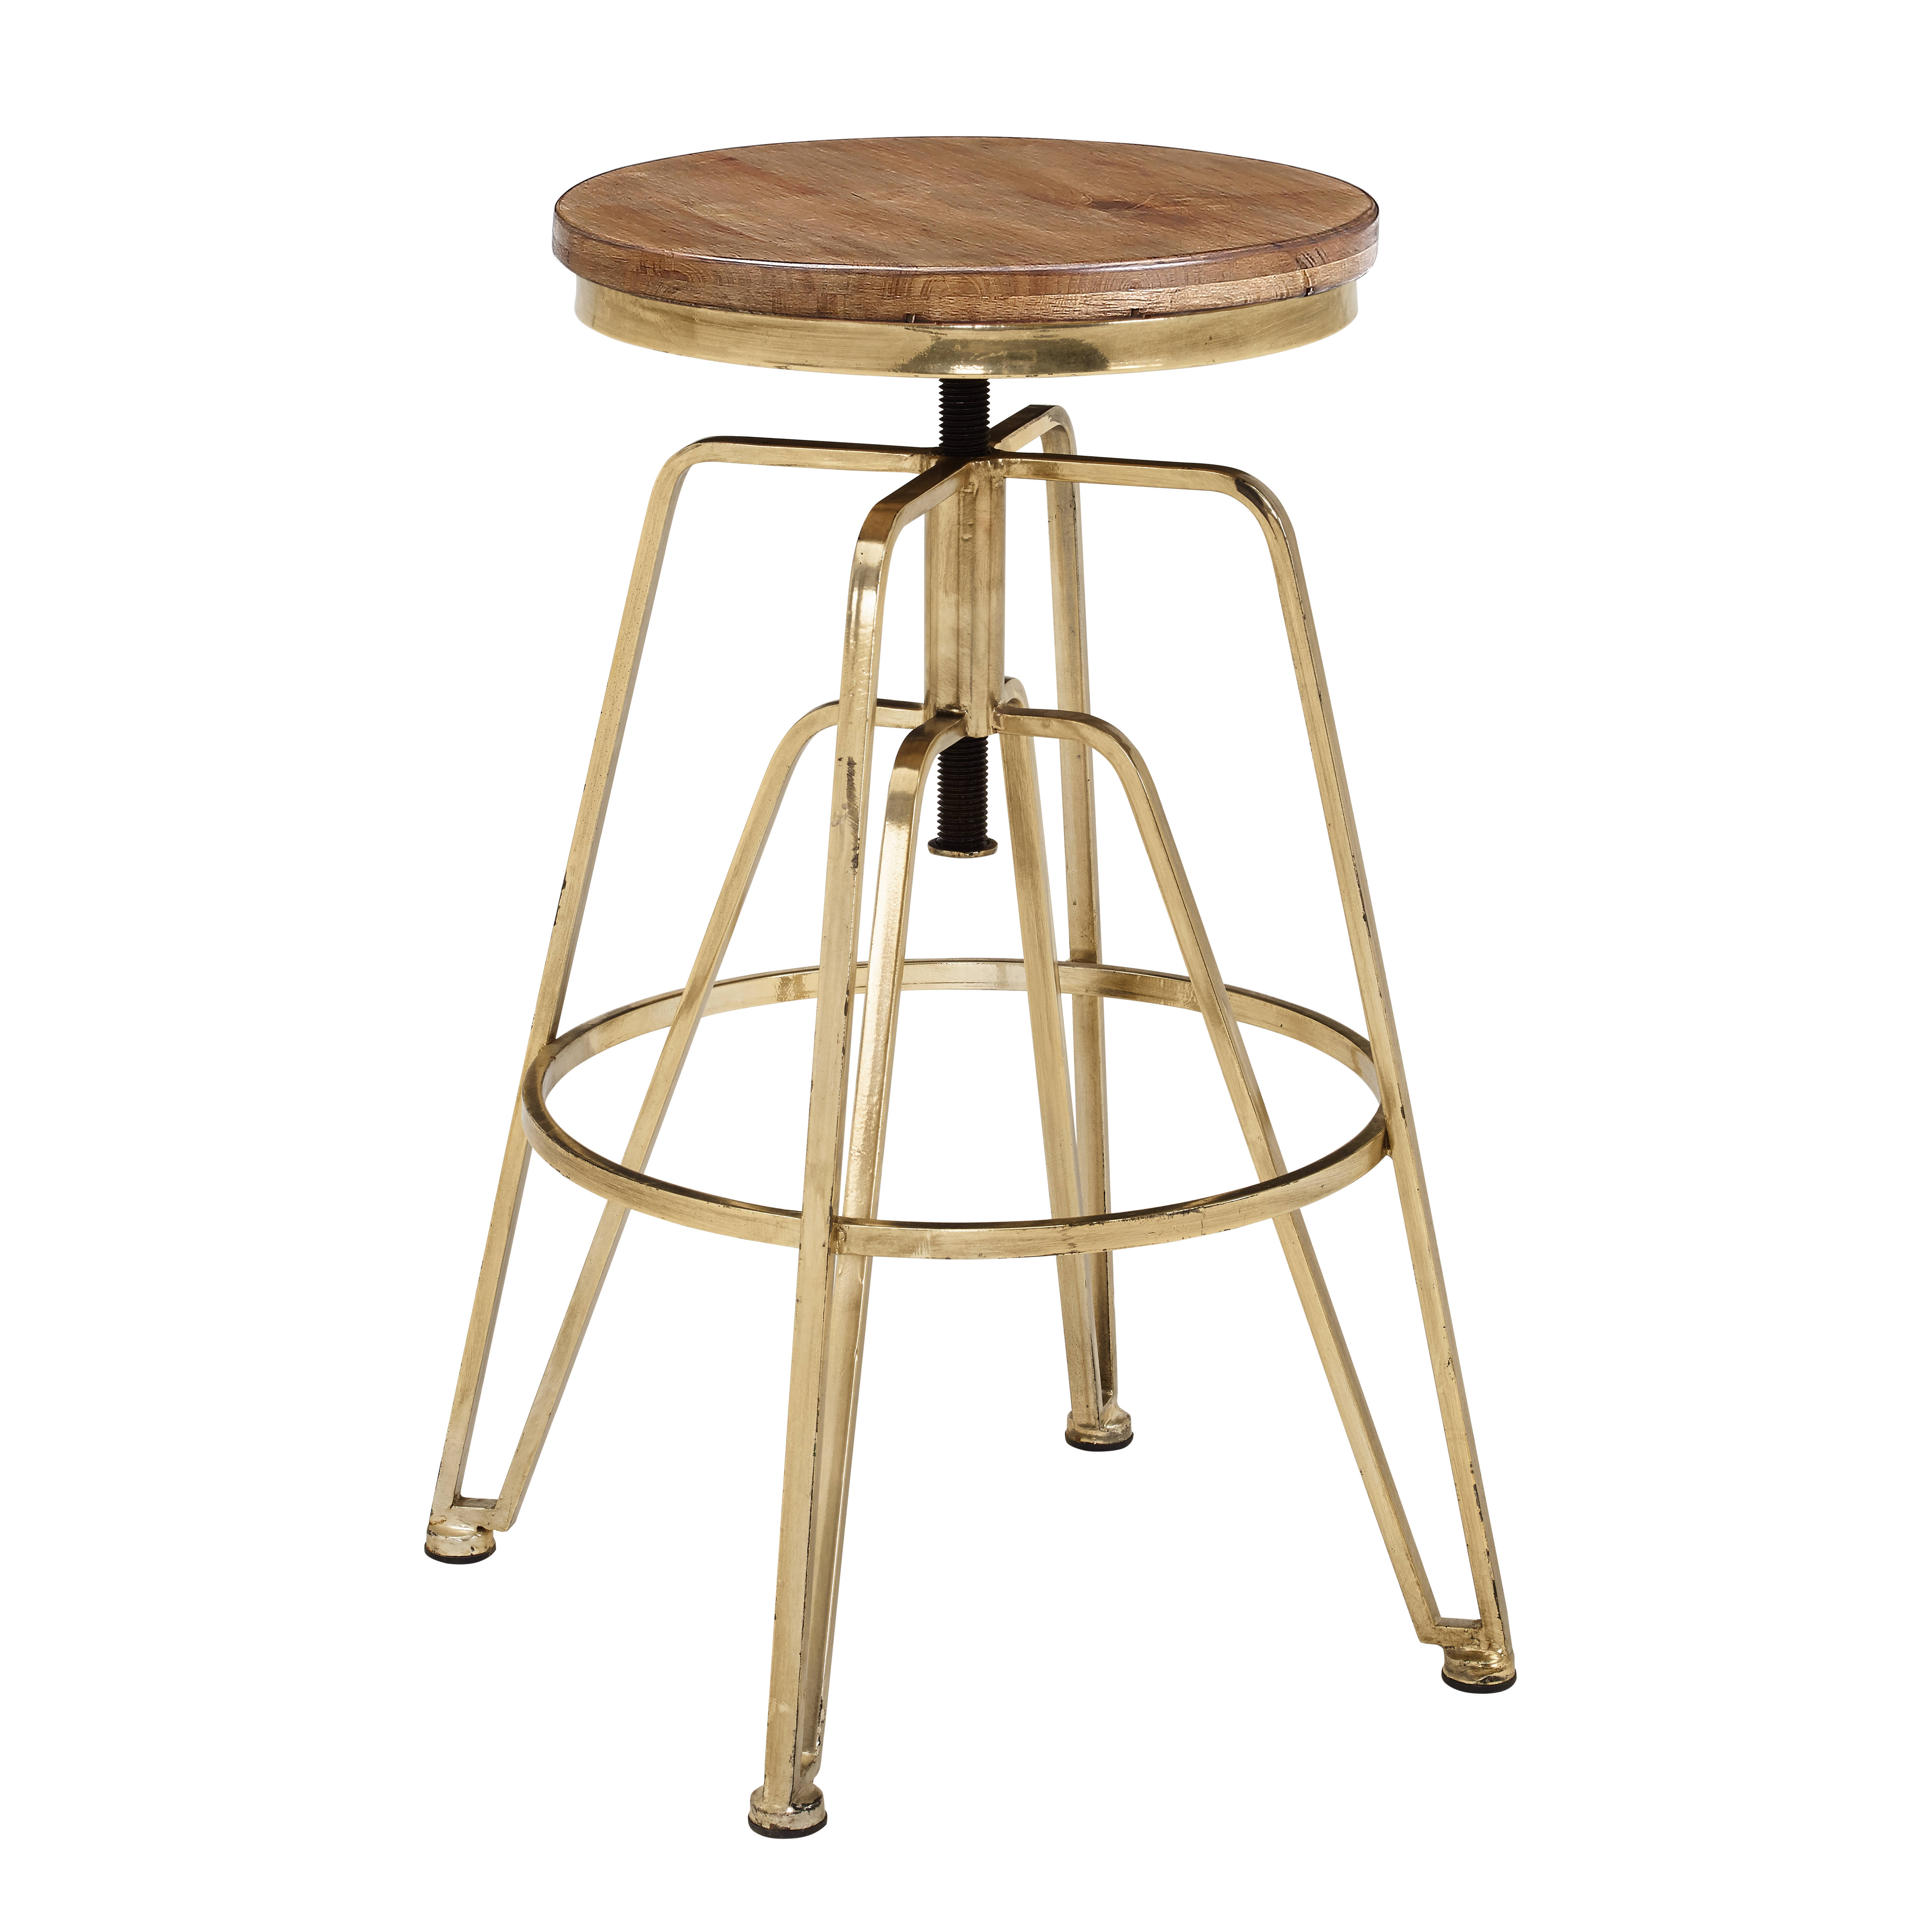 Wooden Revolving Stool Light Brown Swivel Bar Pub Chair: Linon Brown Gold Wood And Metal Adjustable Stool